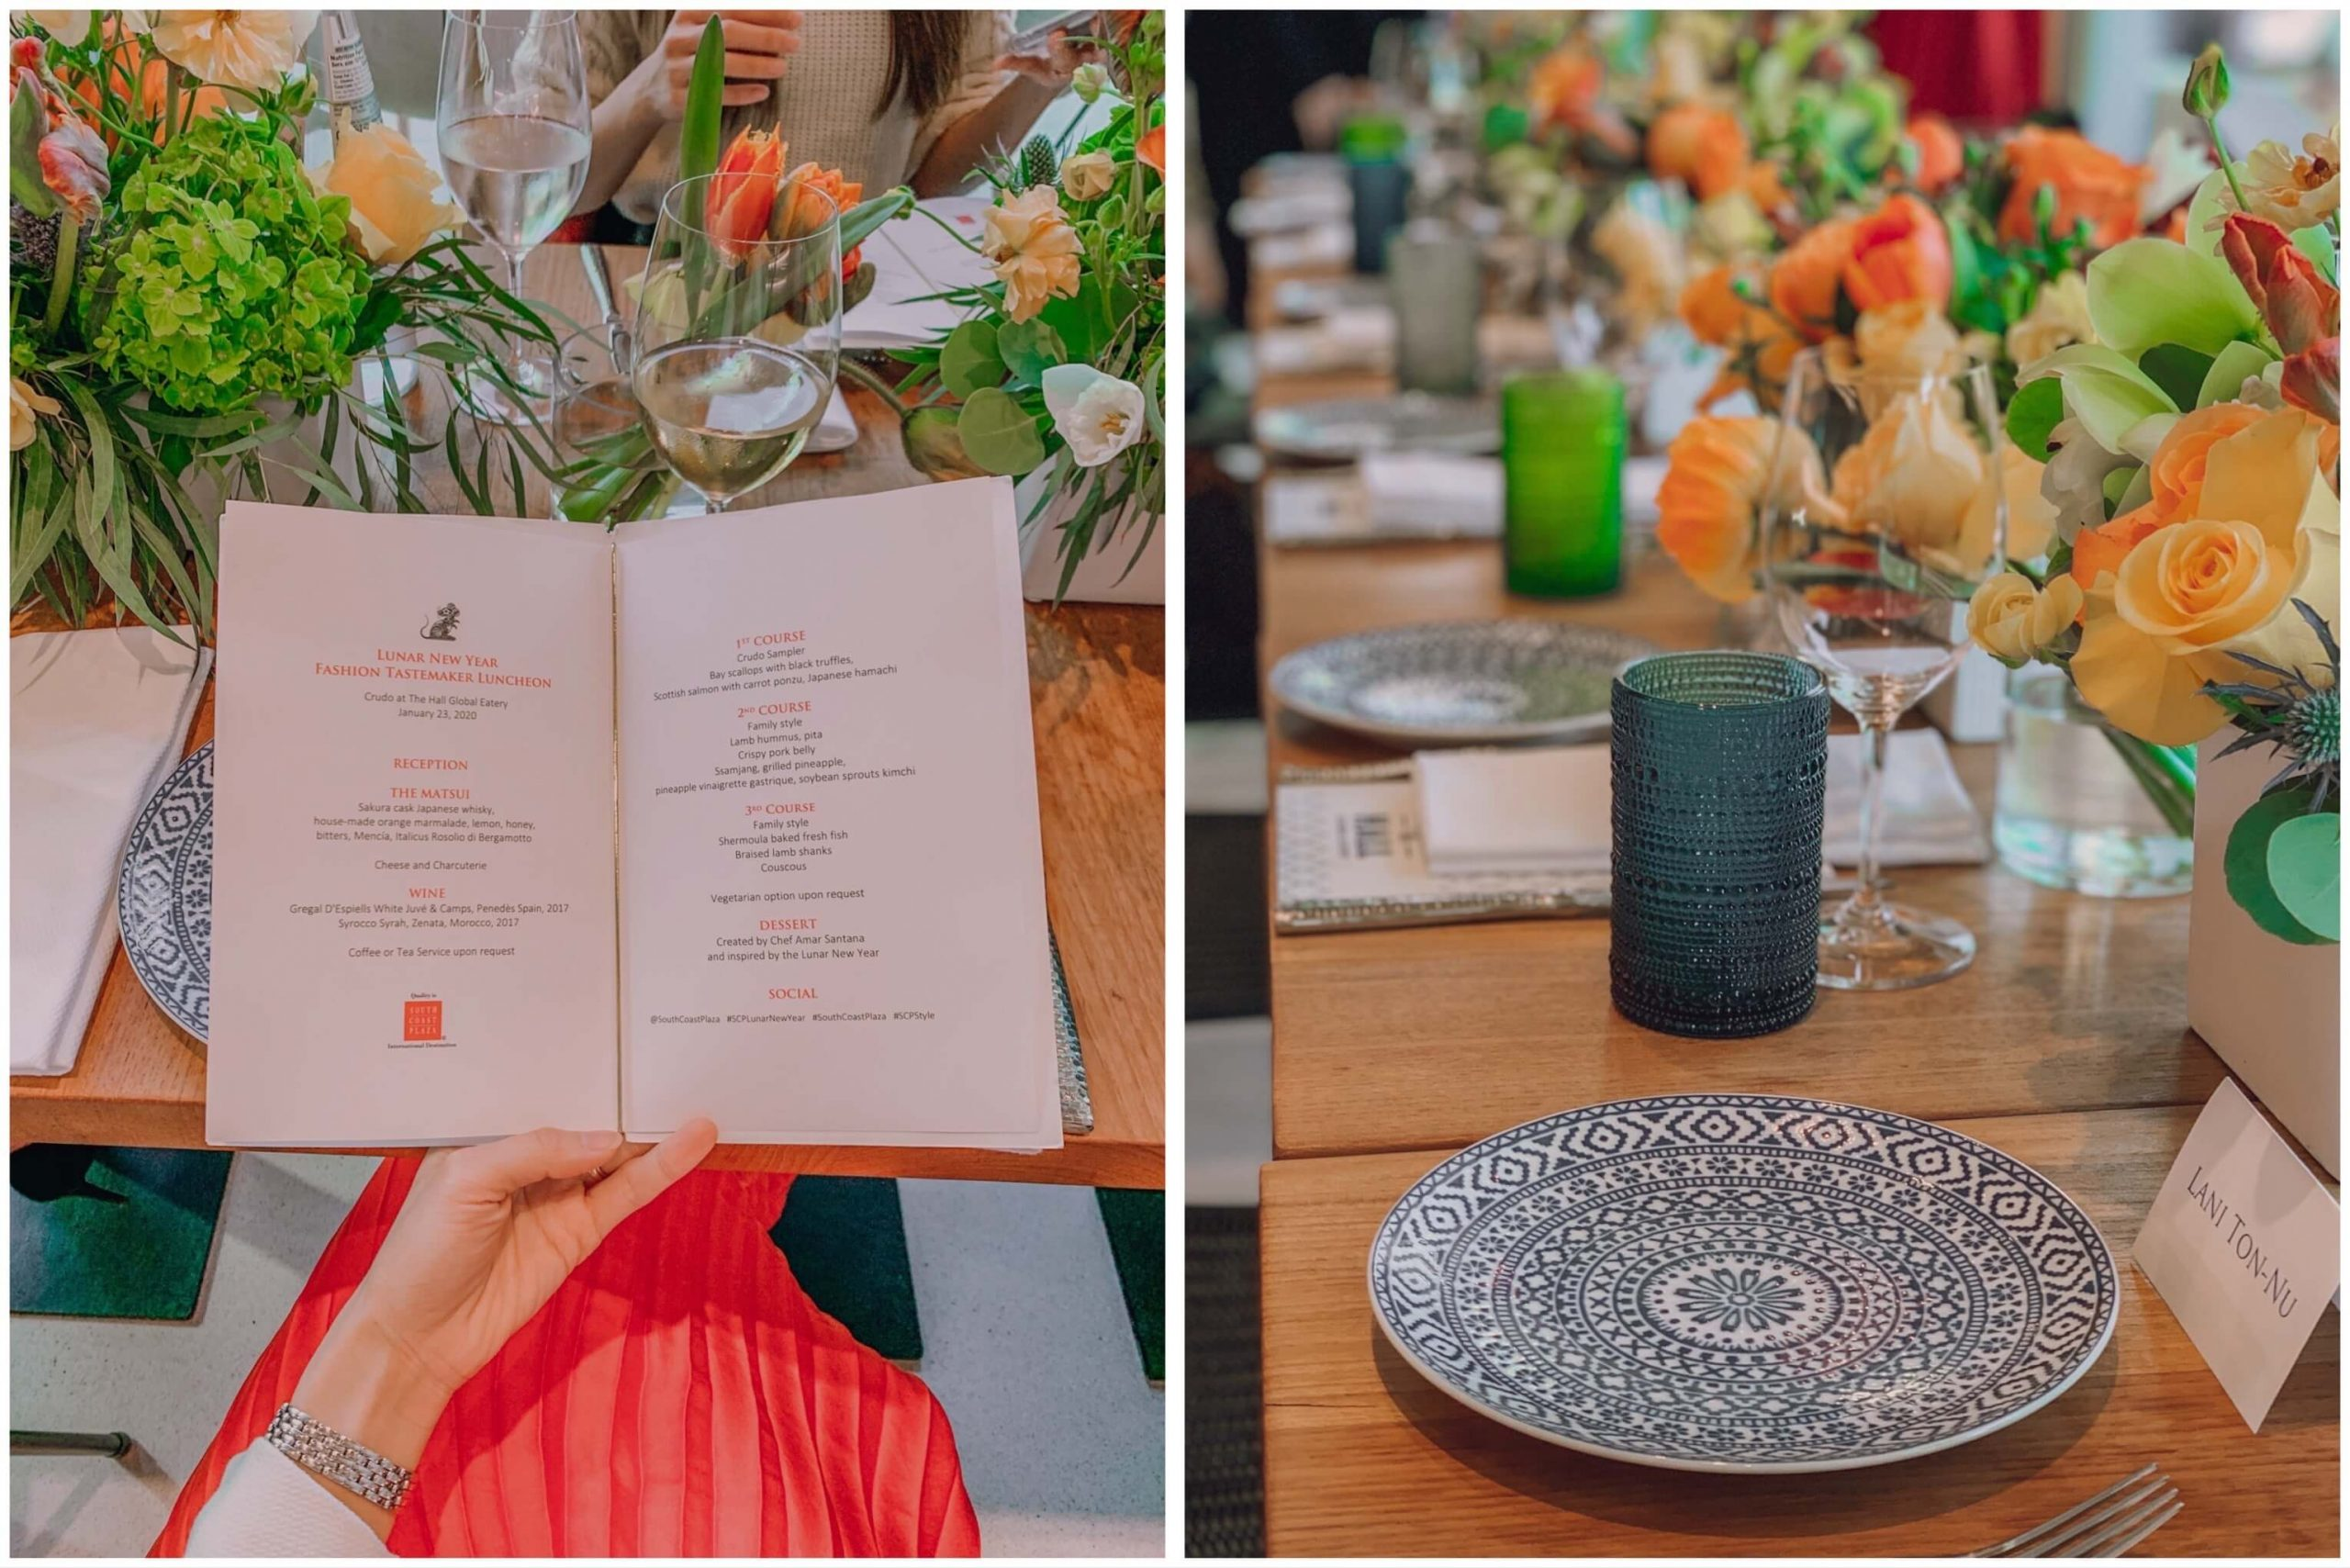 Menu and table setting at Fashion Tastemaker Luncheon Event at South Coast Plaza